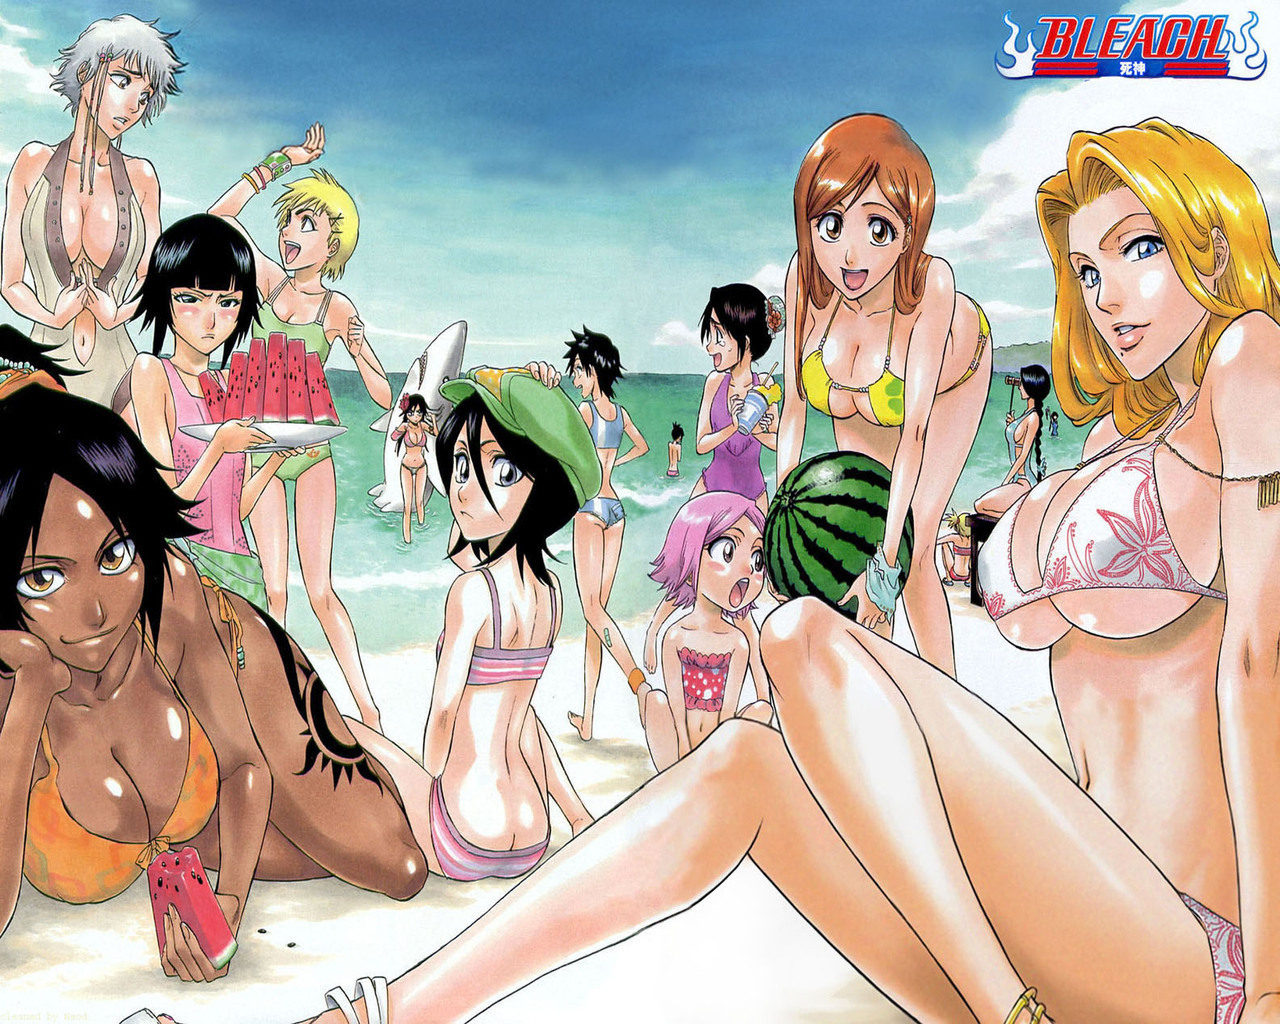 Bleach Girls at the ビーチ